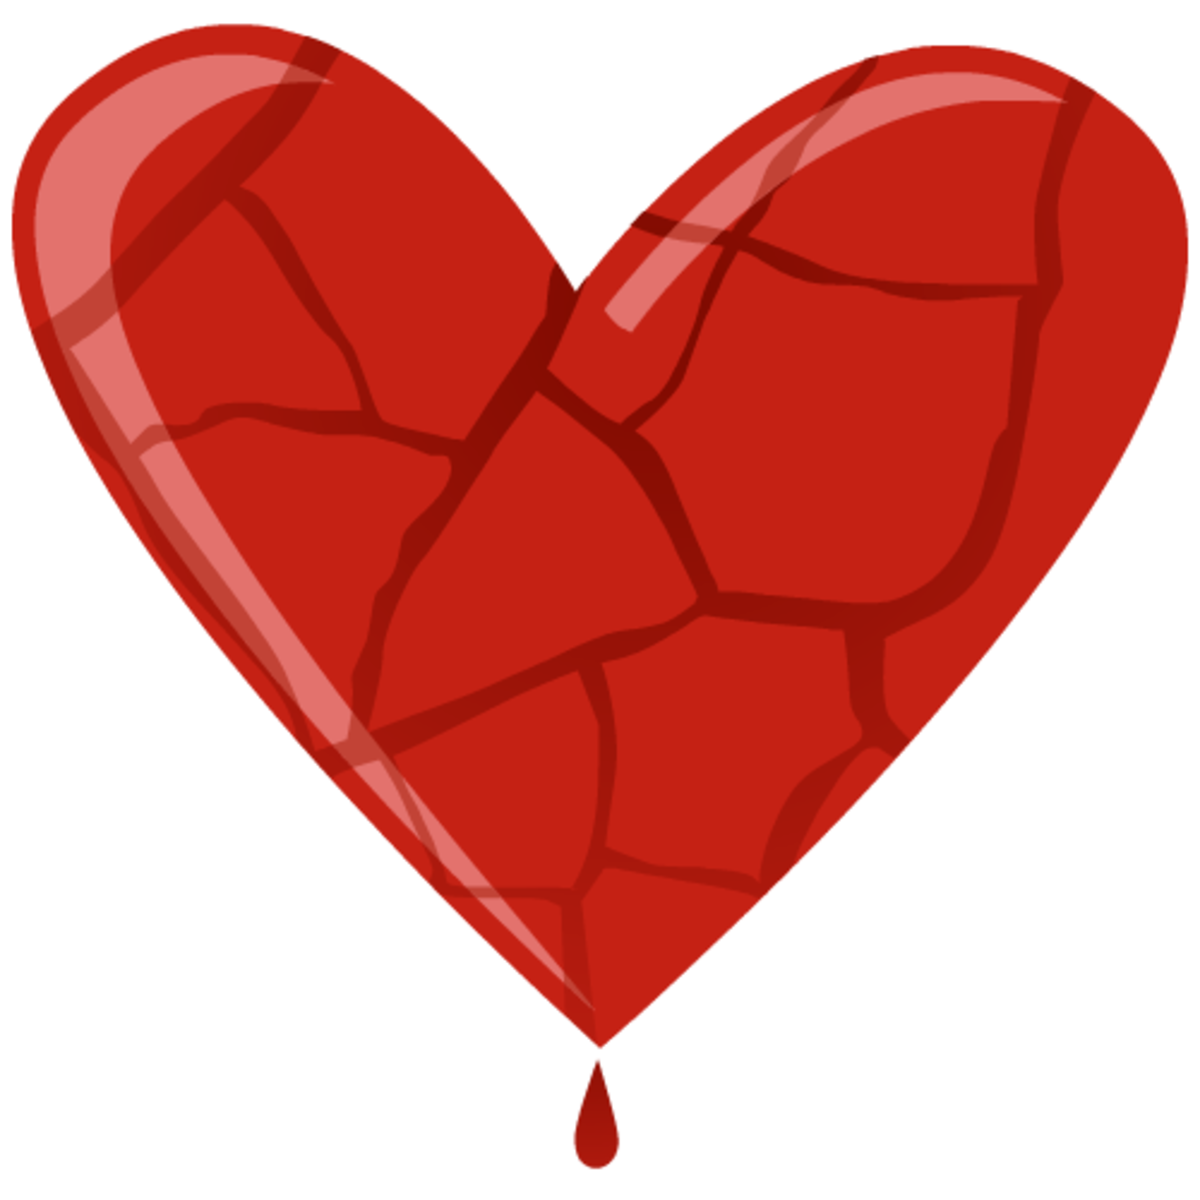 Broken heart dripping blood clip art